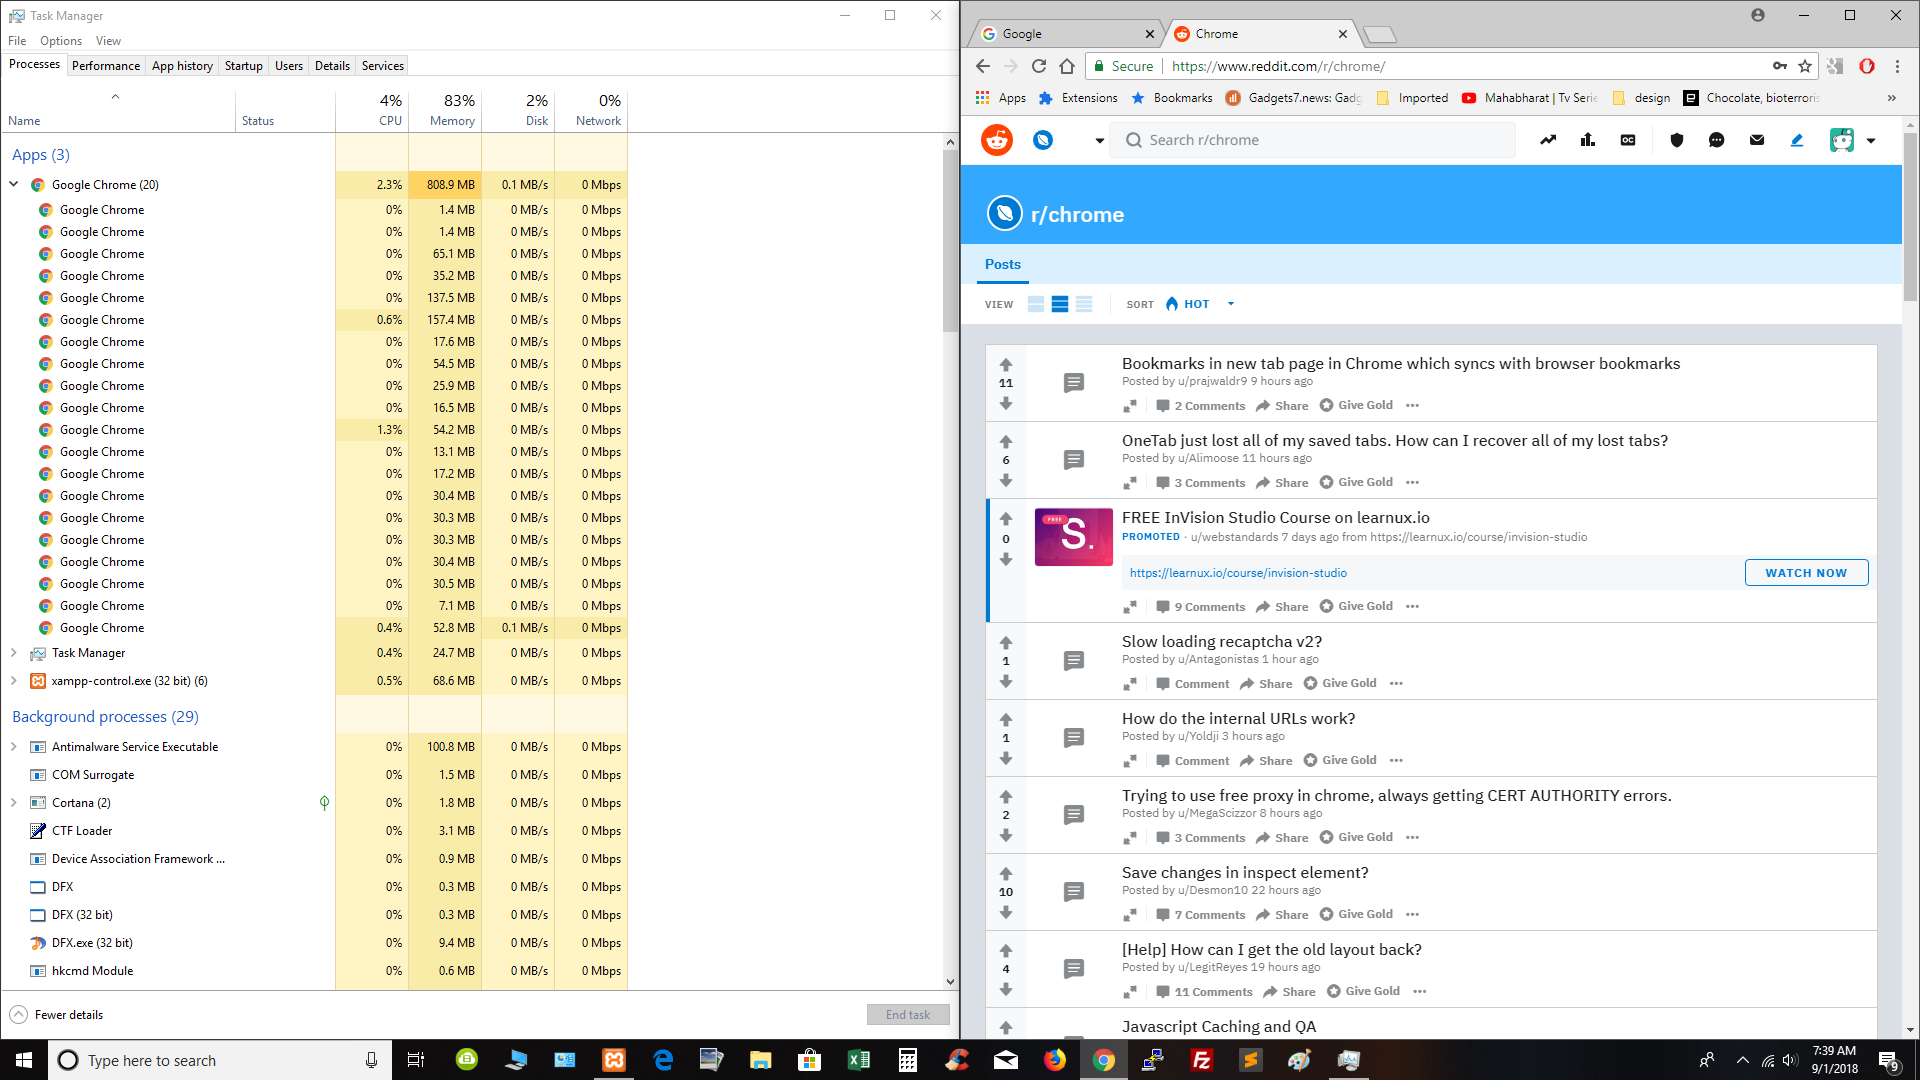 Only 2 tabs are opened, but in task manager it shows Chrome (20) and